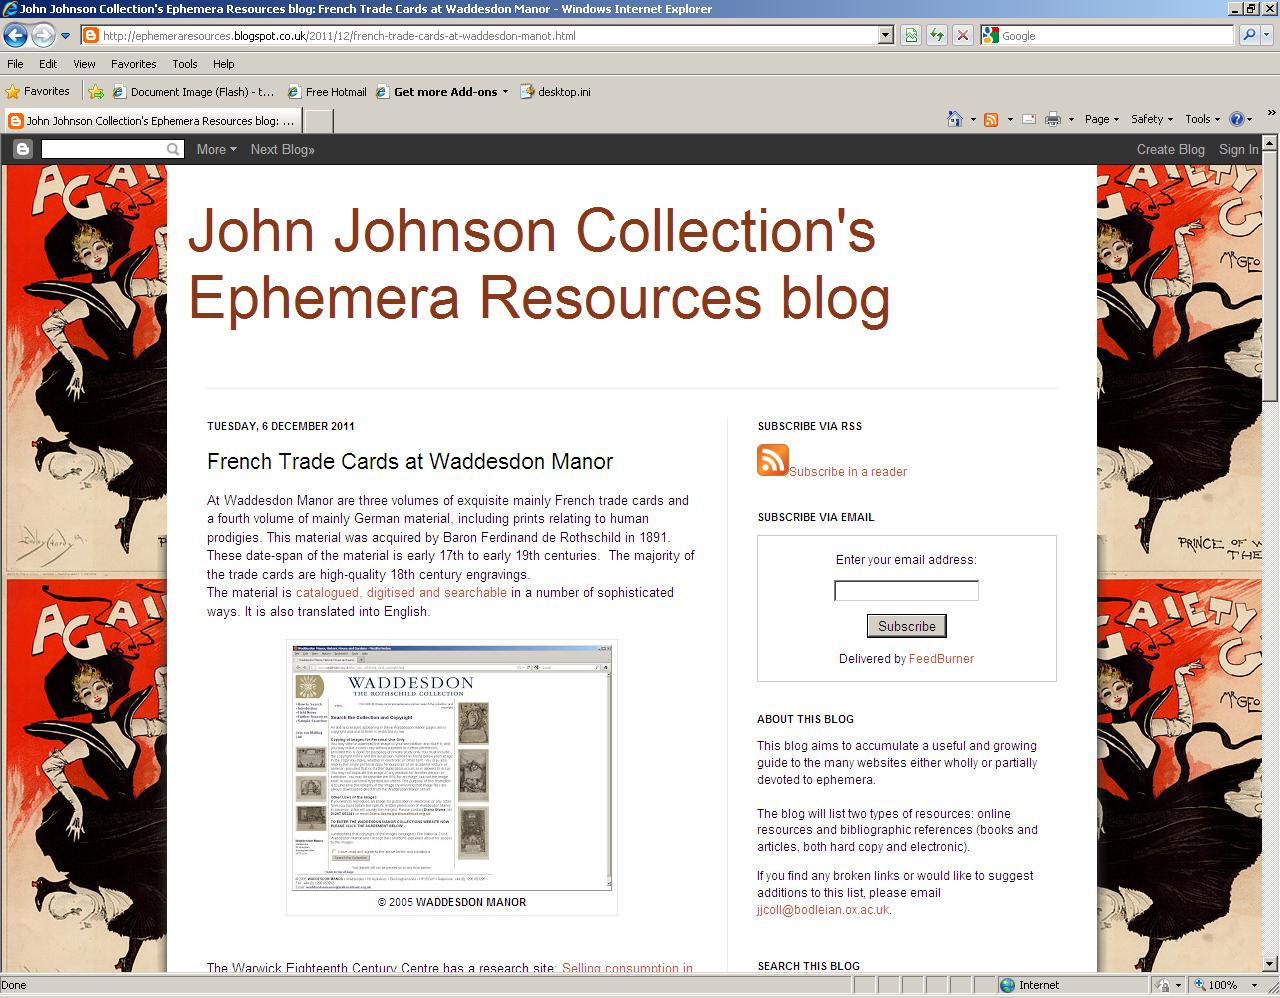 Sample page of the John Johnson Collection's Ephemera Resources blog (now archived)